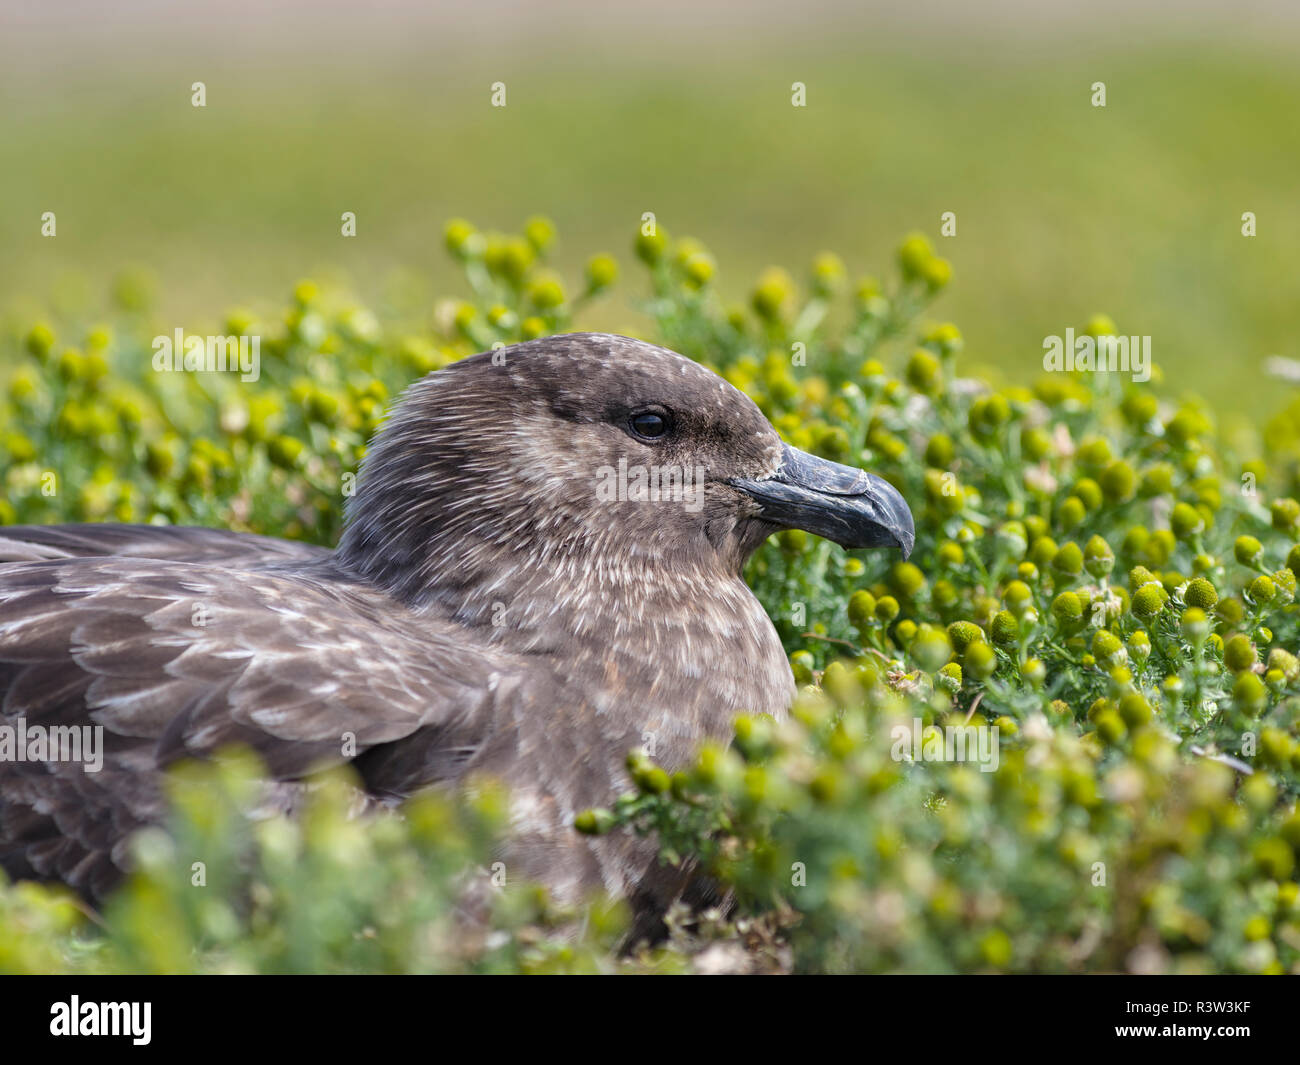 Falkland Skua or Brown Skua (Stercorarius antarcticus, exact taxonomy is under dispute) are the great skua of the southern polar and subpolar region. Stock Photo